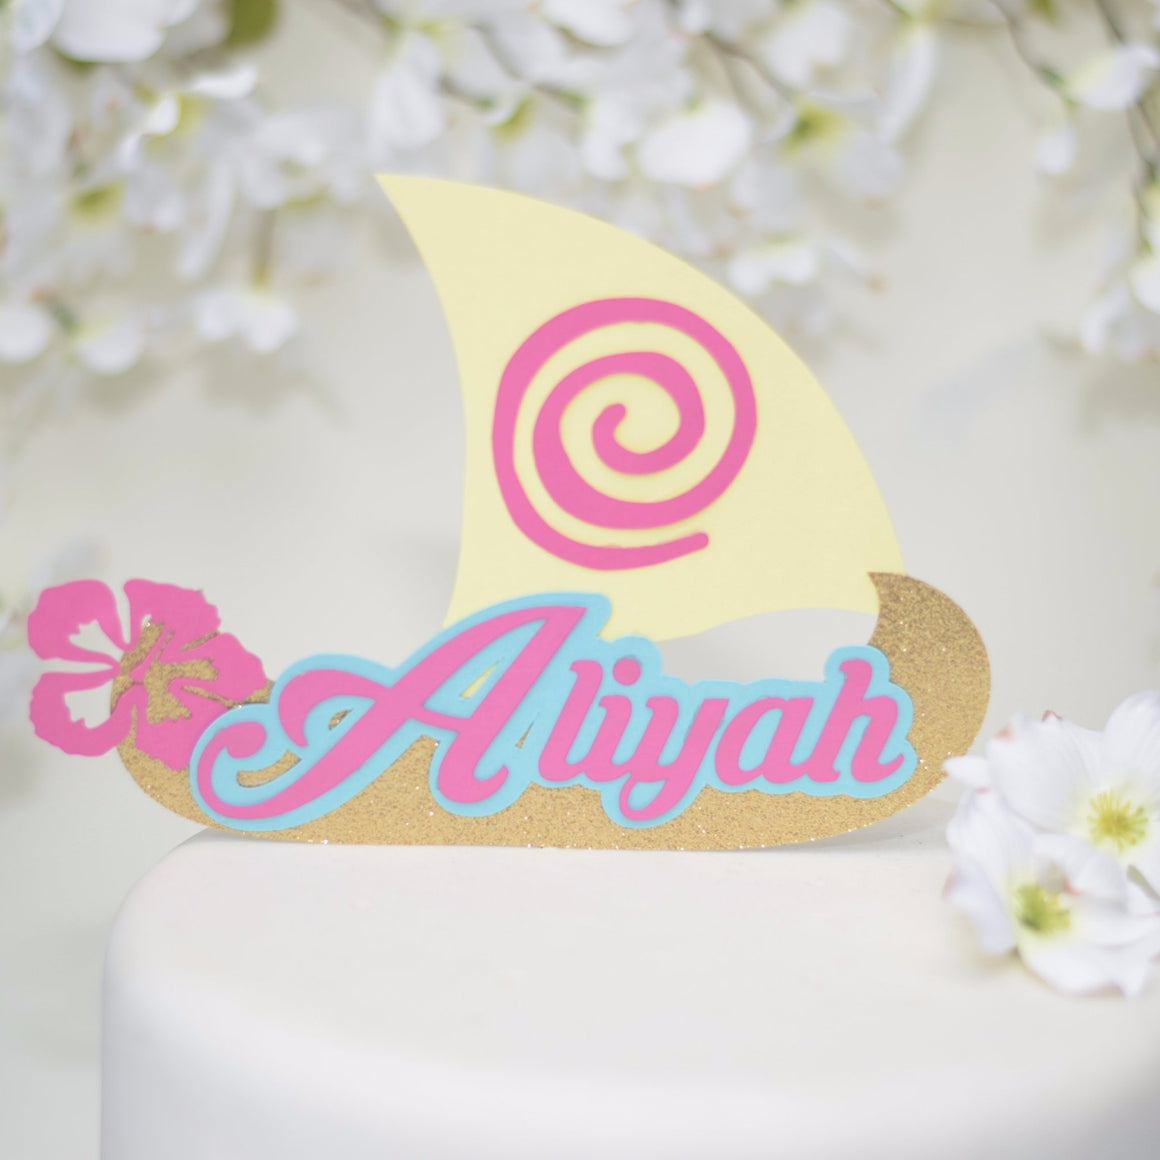 Aliyah Moana inspired cake topper with Hawaiian flowers and design